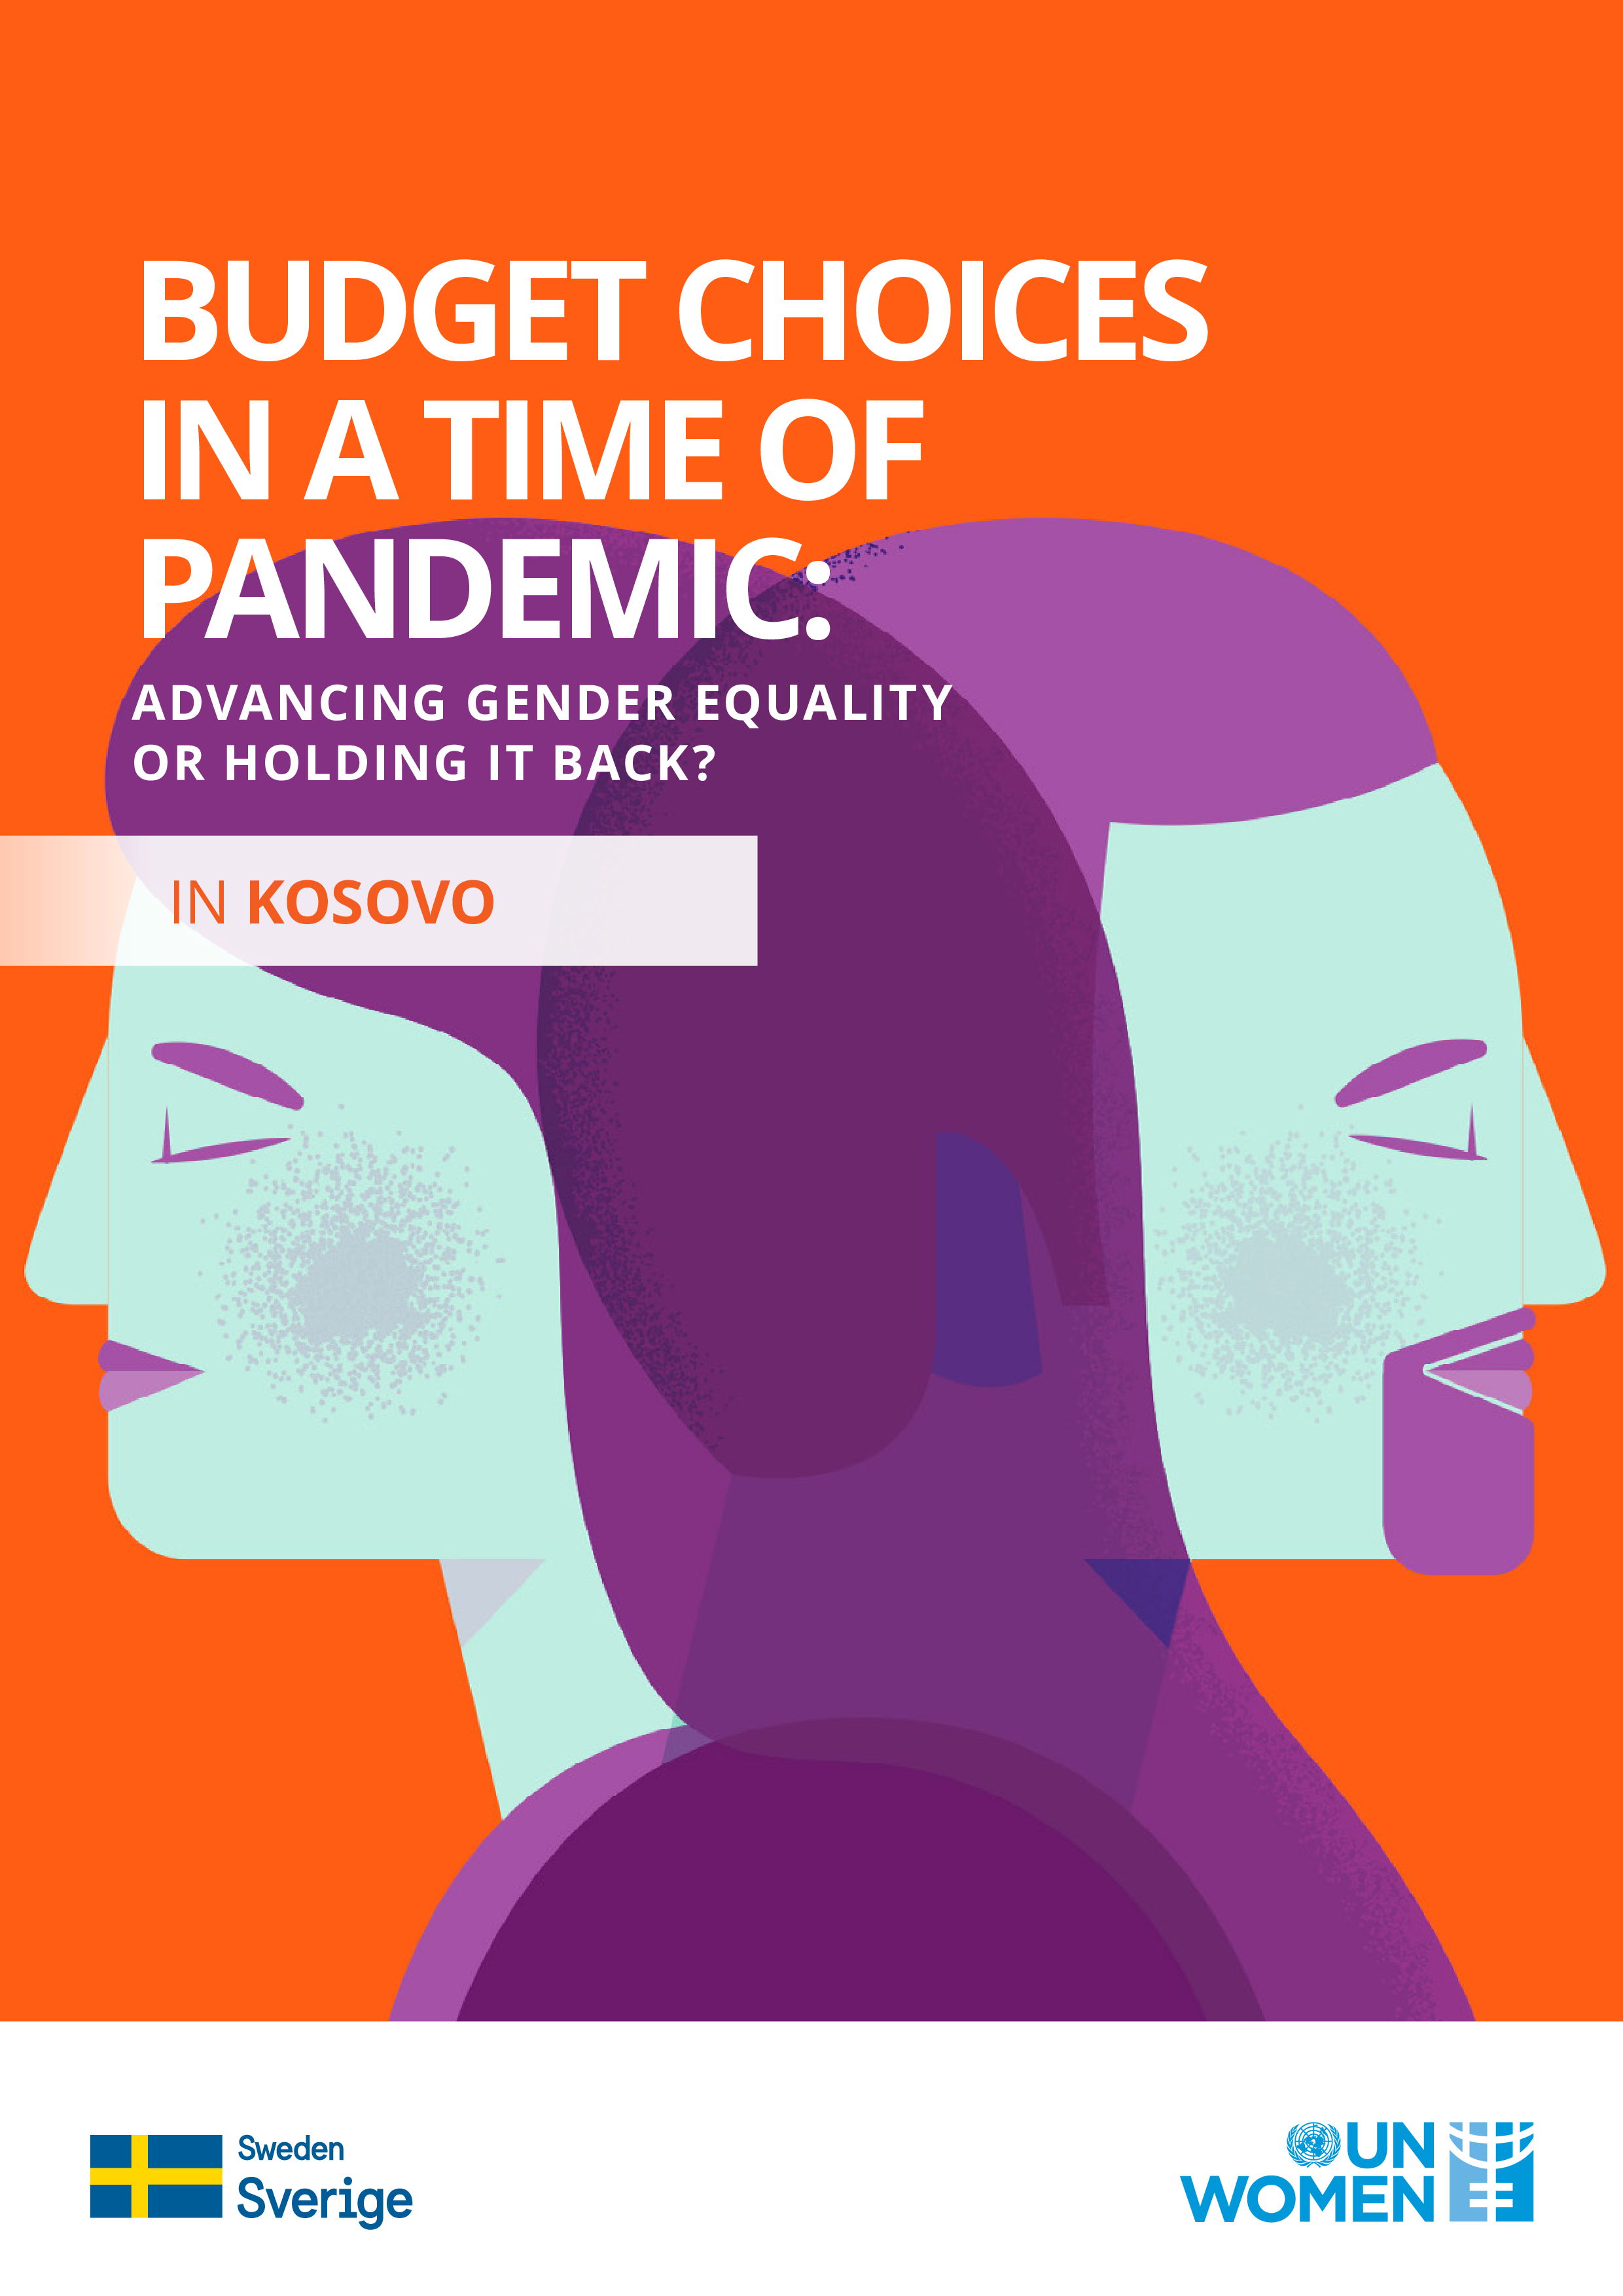 Budget Choices In A Time Of Pandemic: Advancing Gender Equality Or Holding It Back?